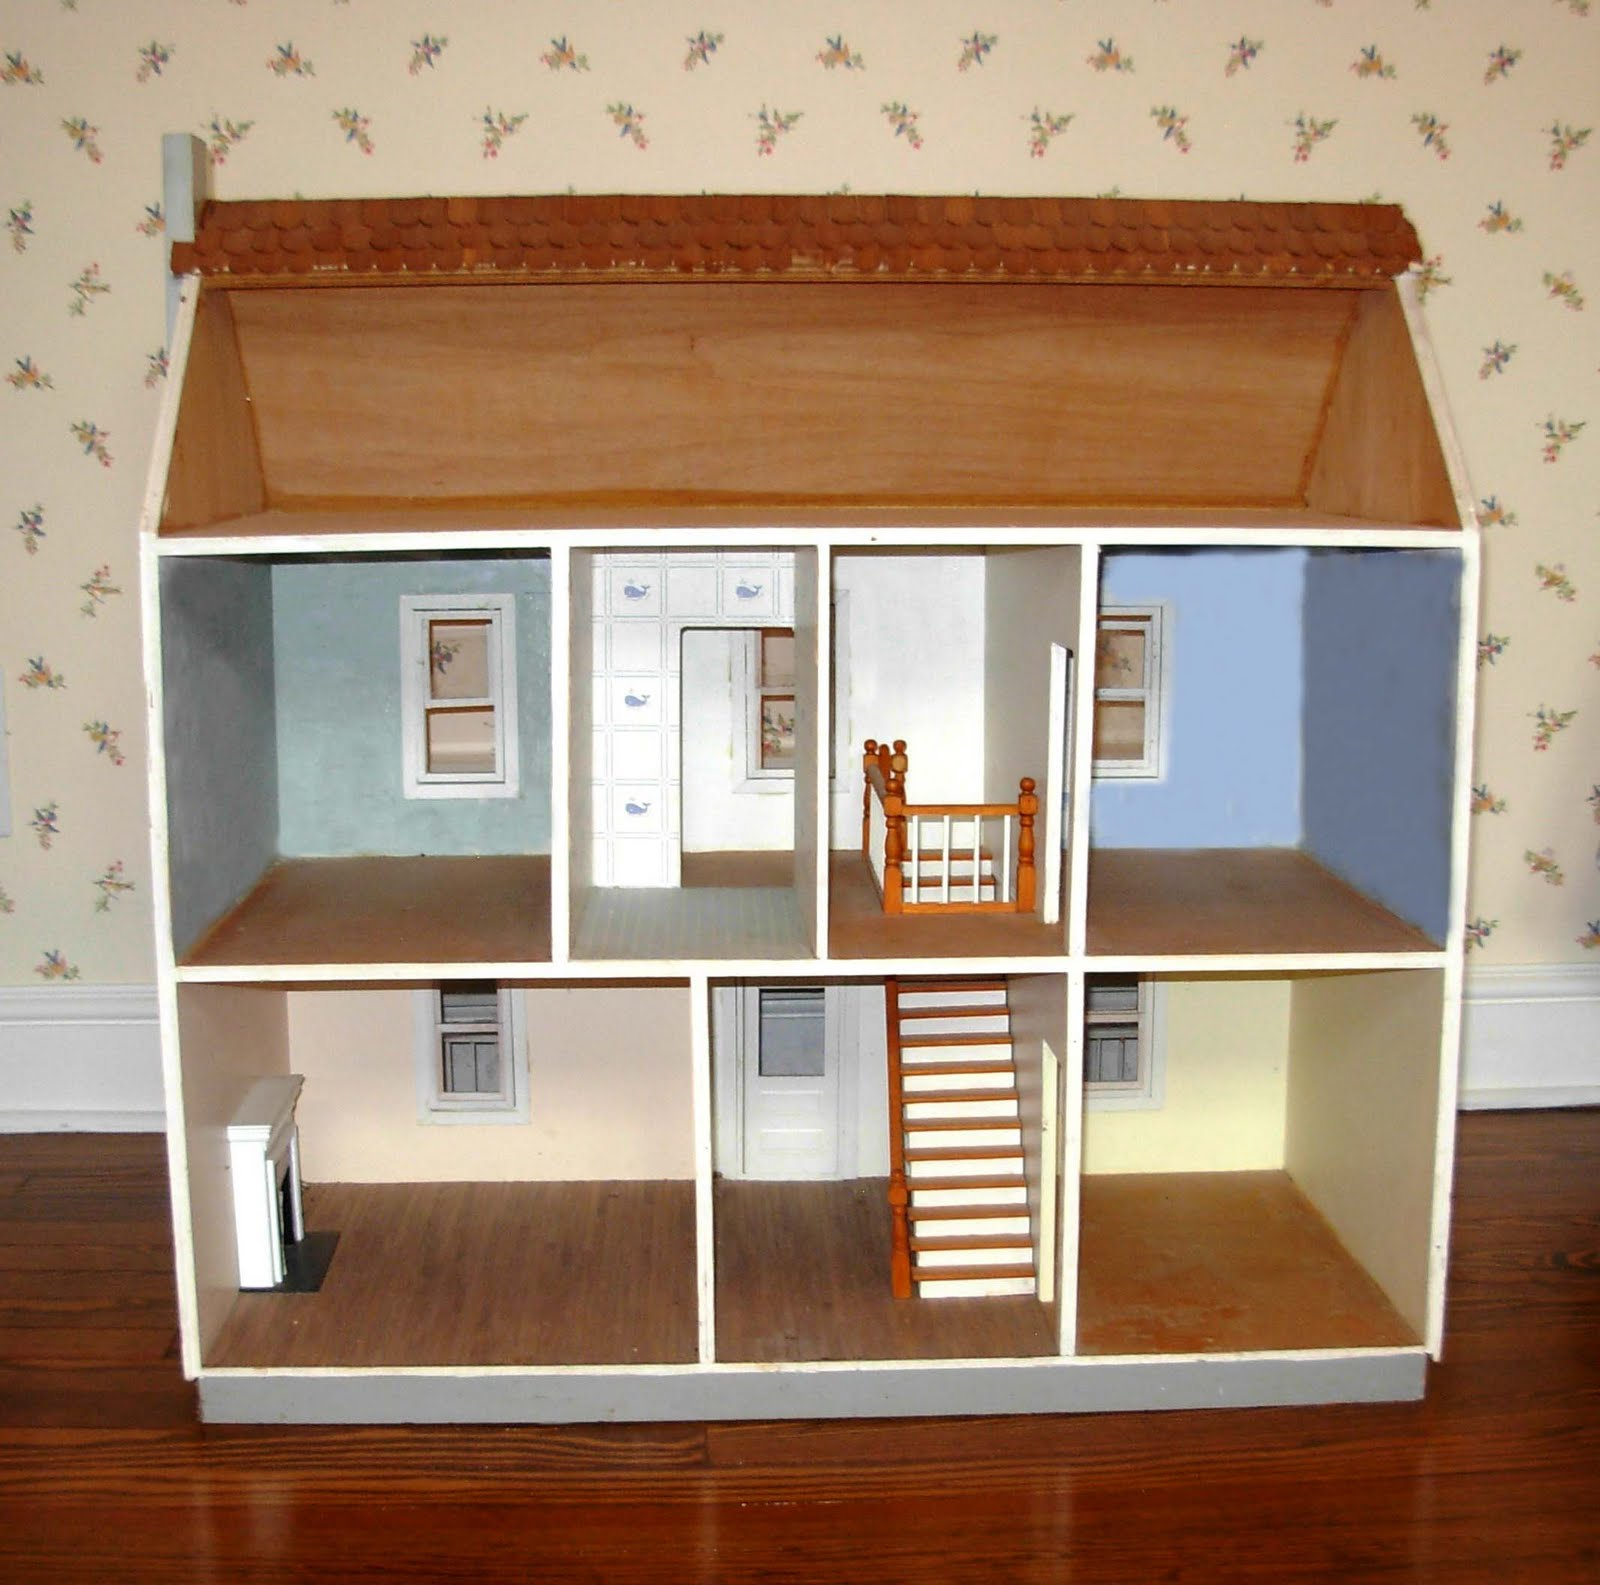 Line Art Dollhouse : Art for small hands drawing inside a dwelling